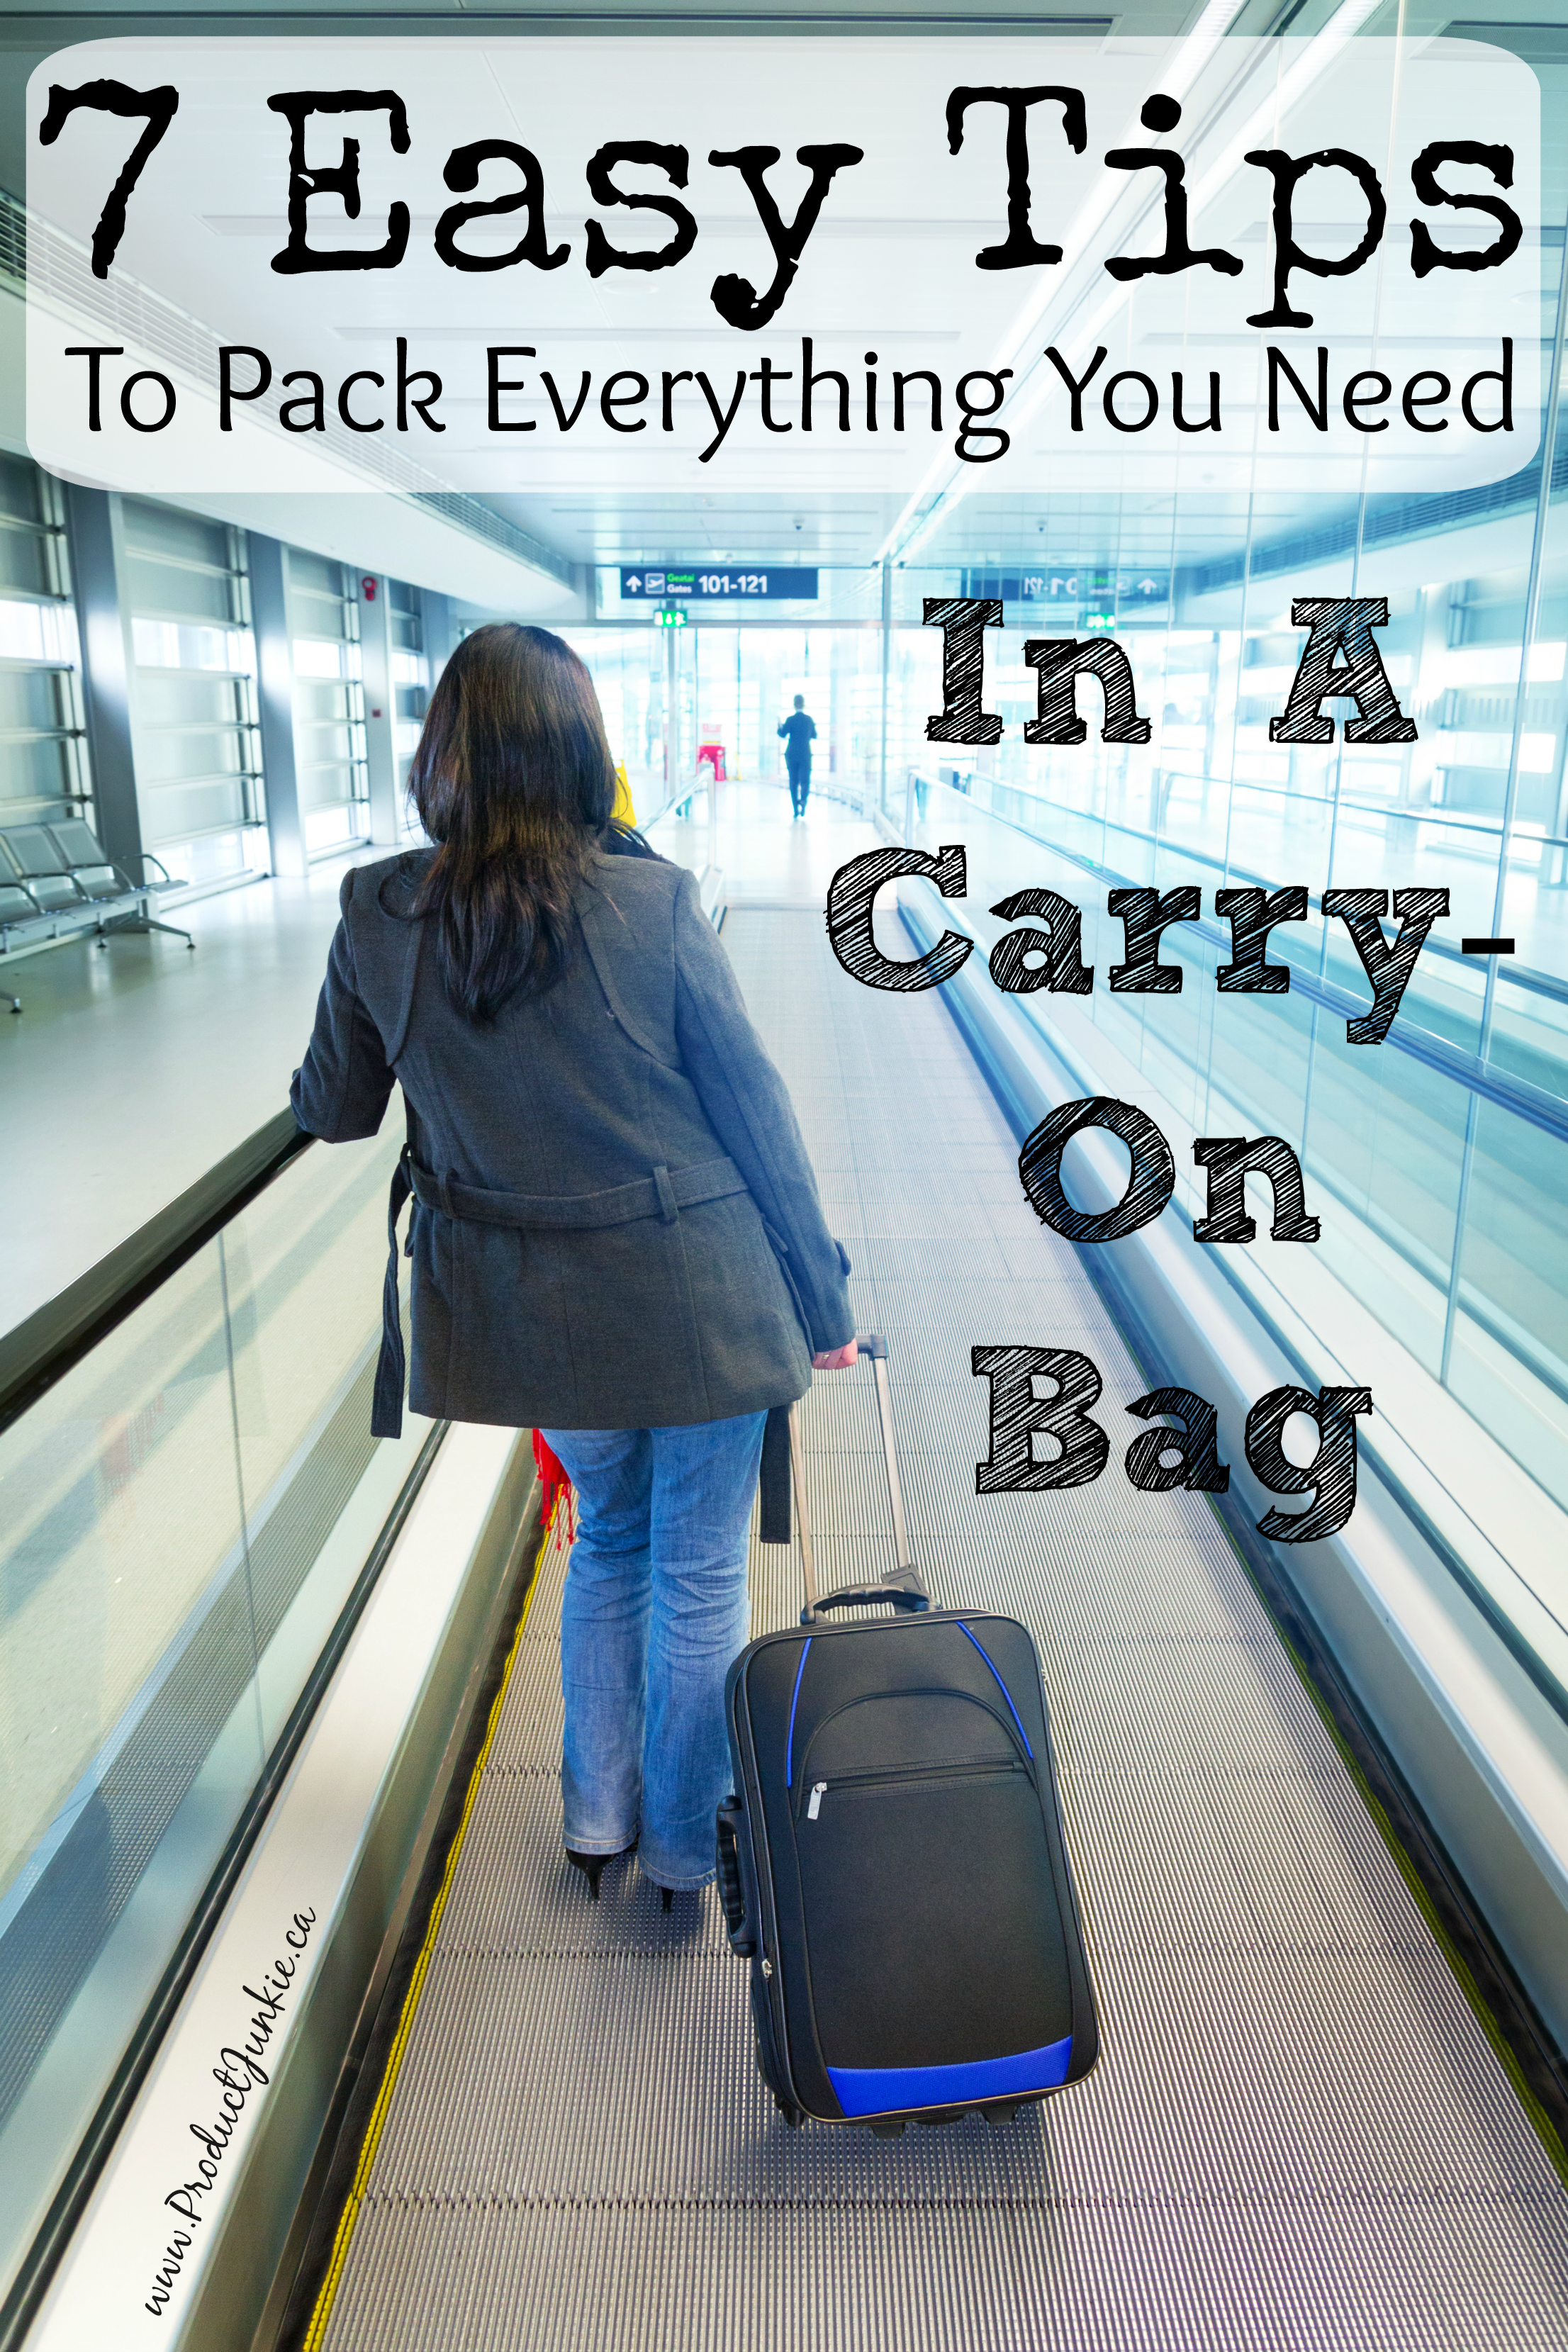 7 Easy Tips To Pack Everything You Need In A Carry-on Bag